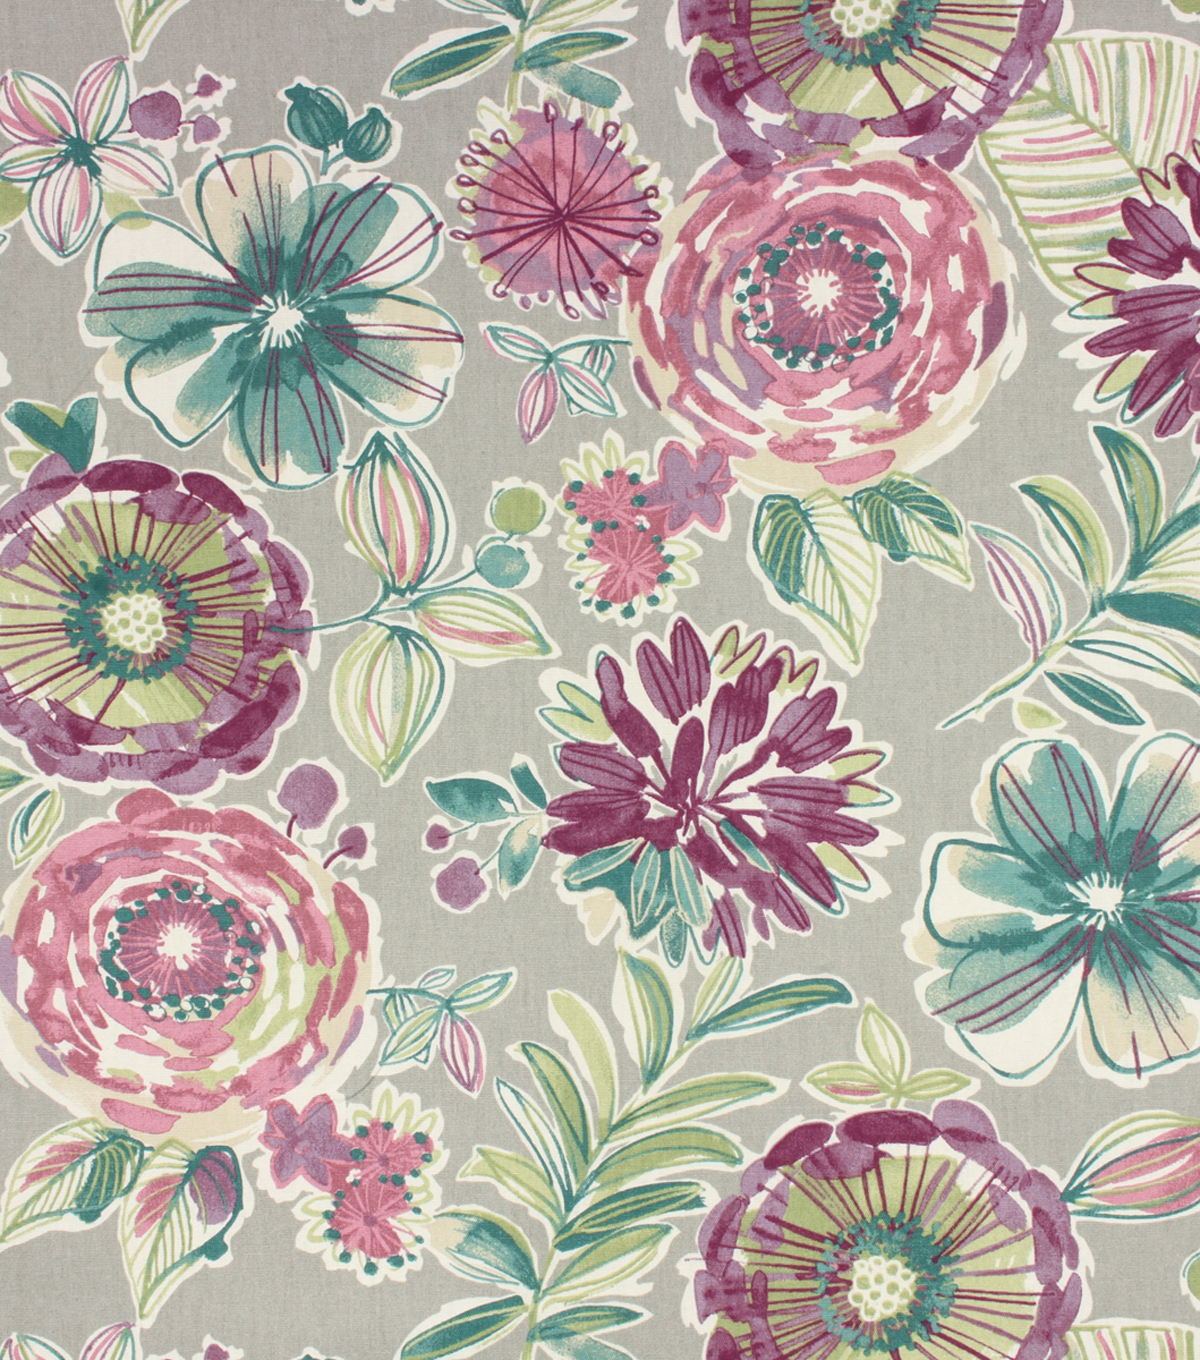 Home Essentials Home Décor Fabric- Colsen Orchid